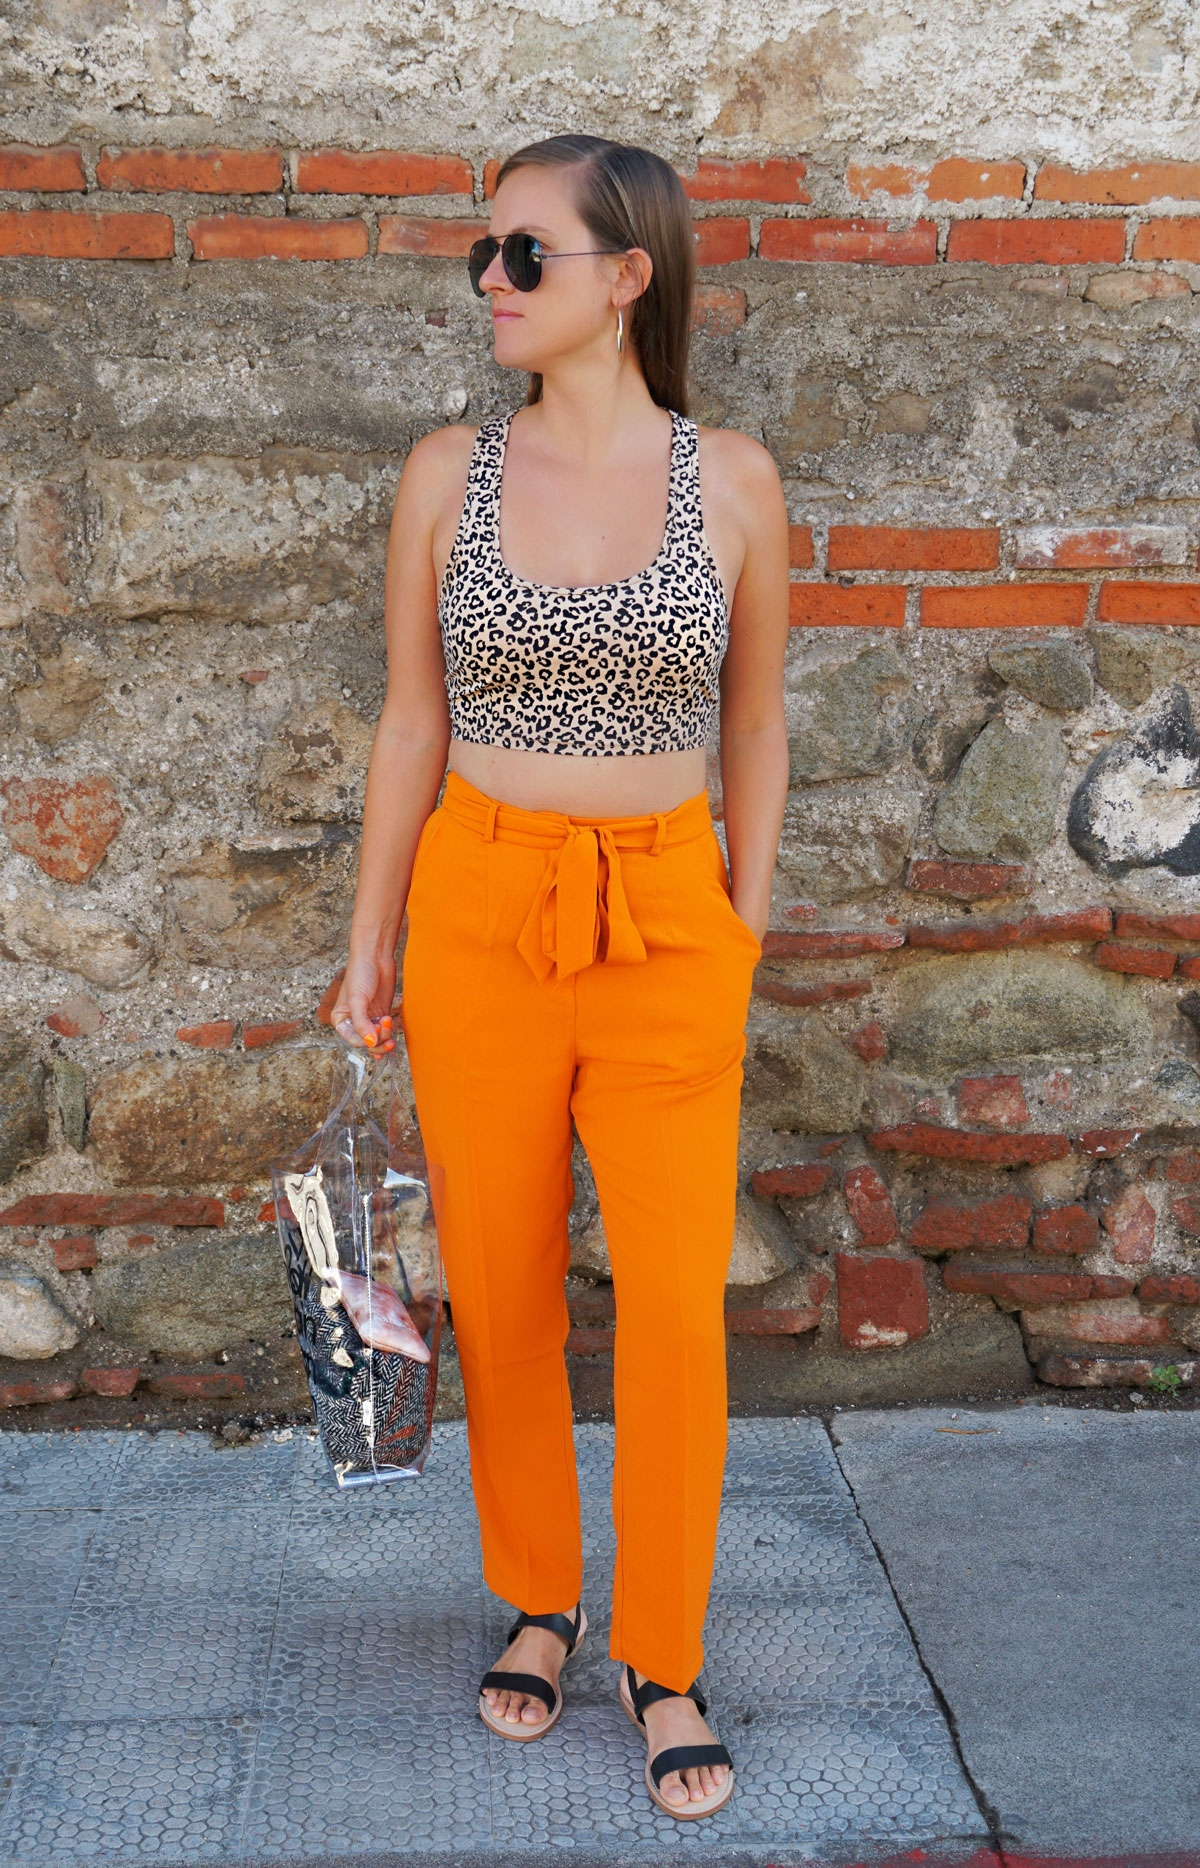 Andrea Steiner, fashion blogger from Strawberries 'n' Champagne based in Switzerland is wearing orange pants with a leopard pattern cropped top, transparent bag and black sandales.